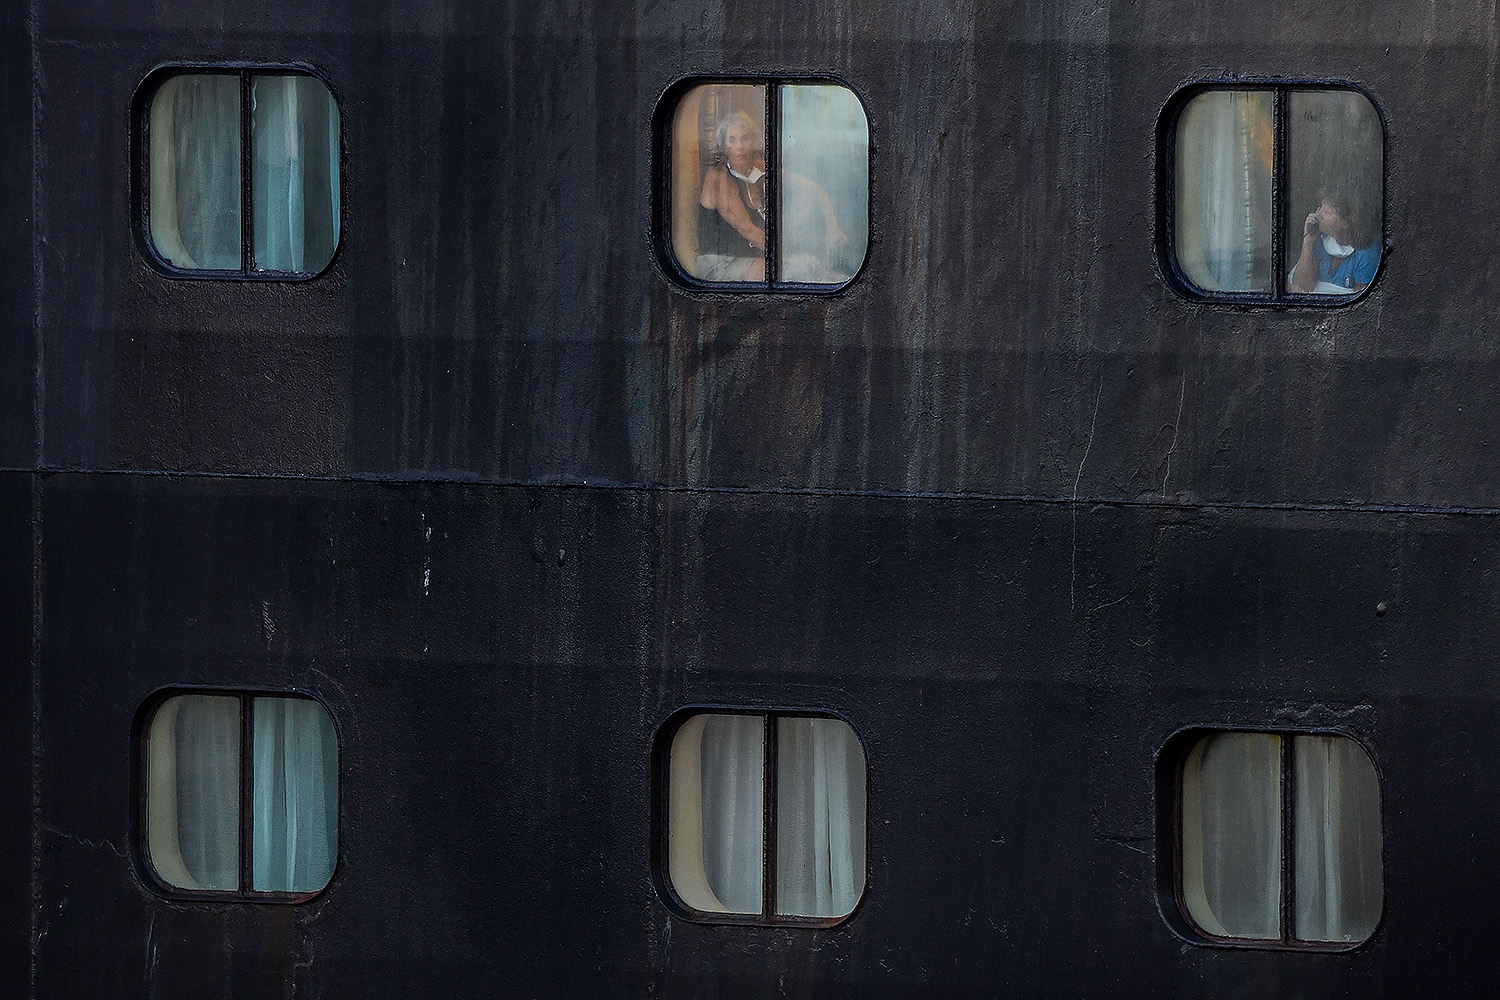 Passengers look out the window of Holland America's cruise ship Rotterdam as it docks at Port Everglades in Fort Lauderdale, Florida, on April 2. CHANDAN KHANNA/AFP via Getty Images